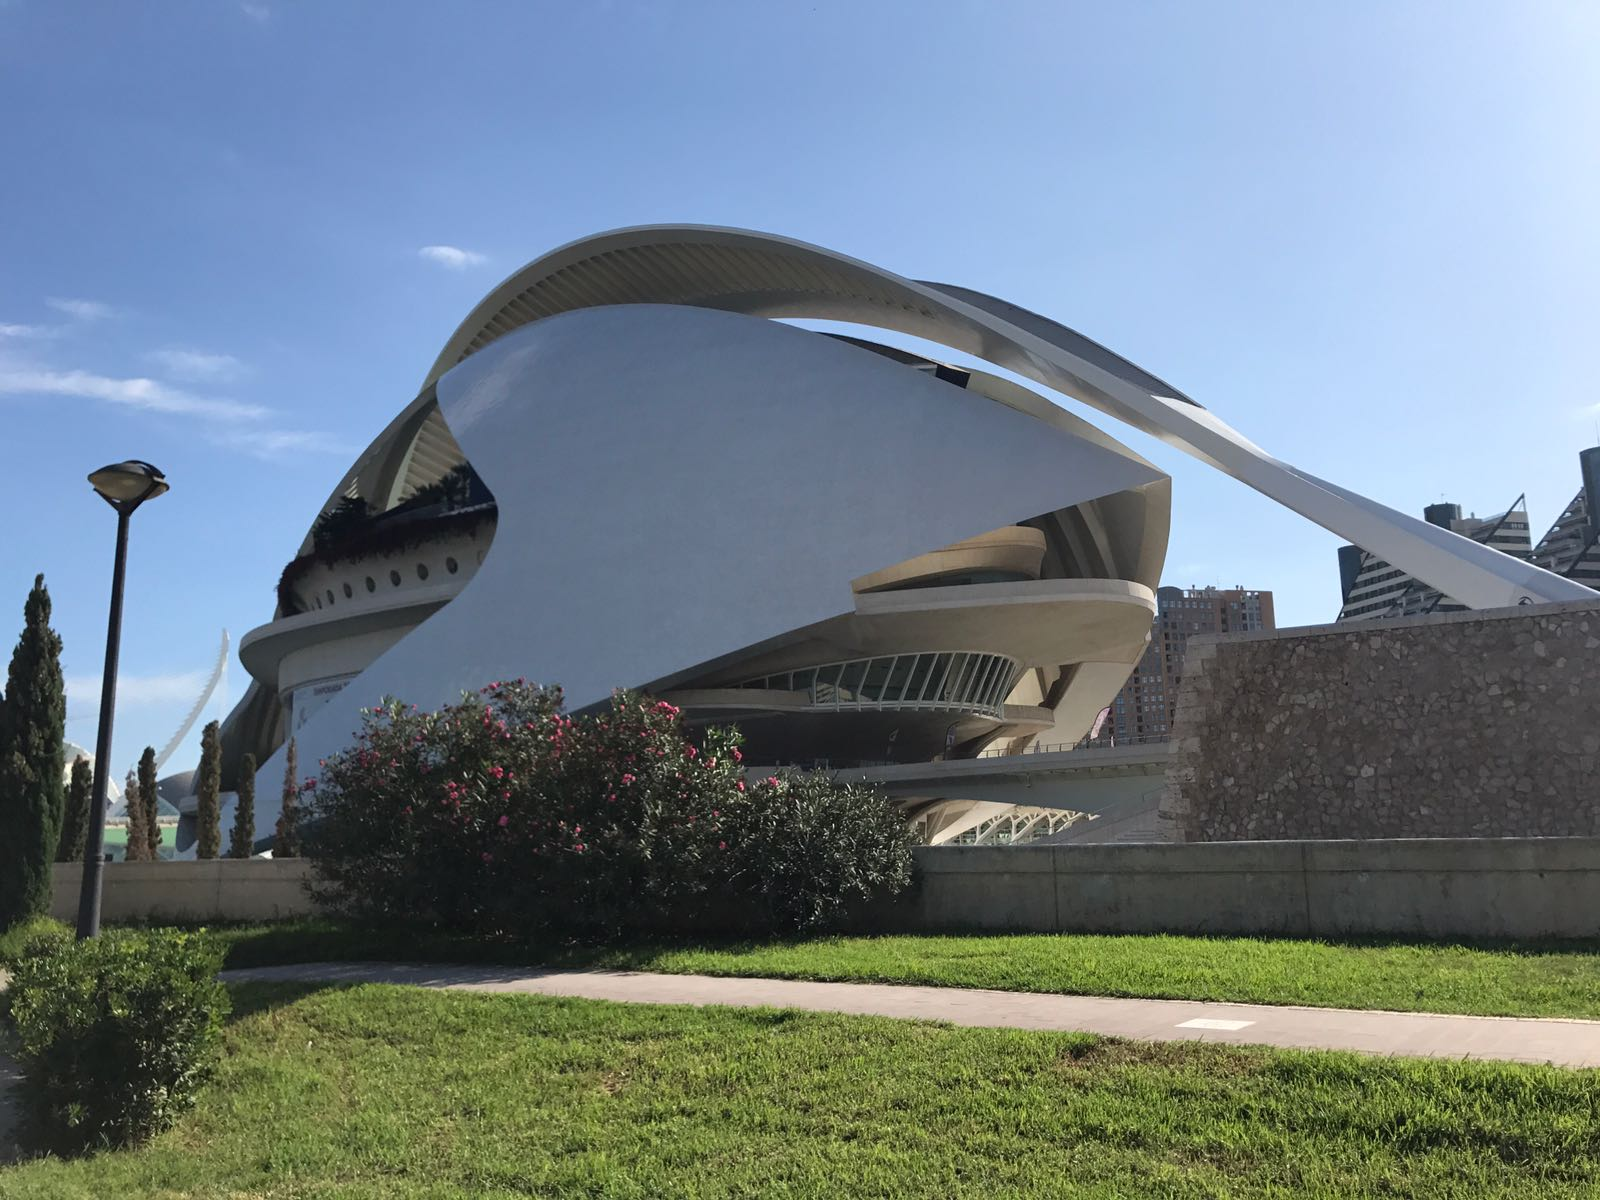 Opera Valencia from behind showing the side covering and the surrounding gardens